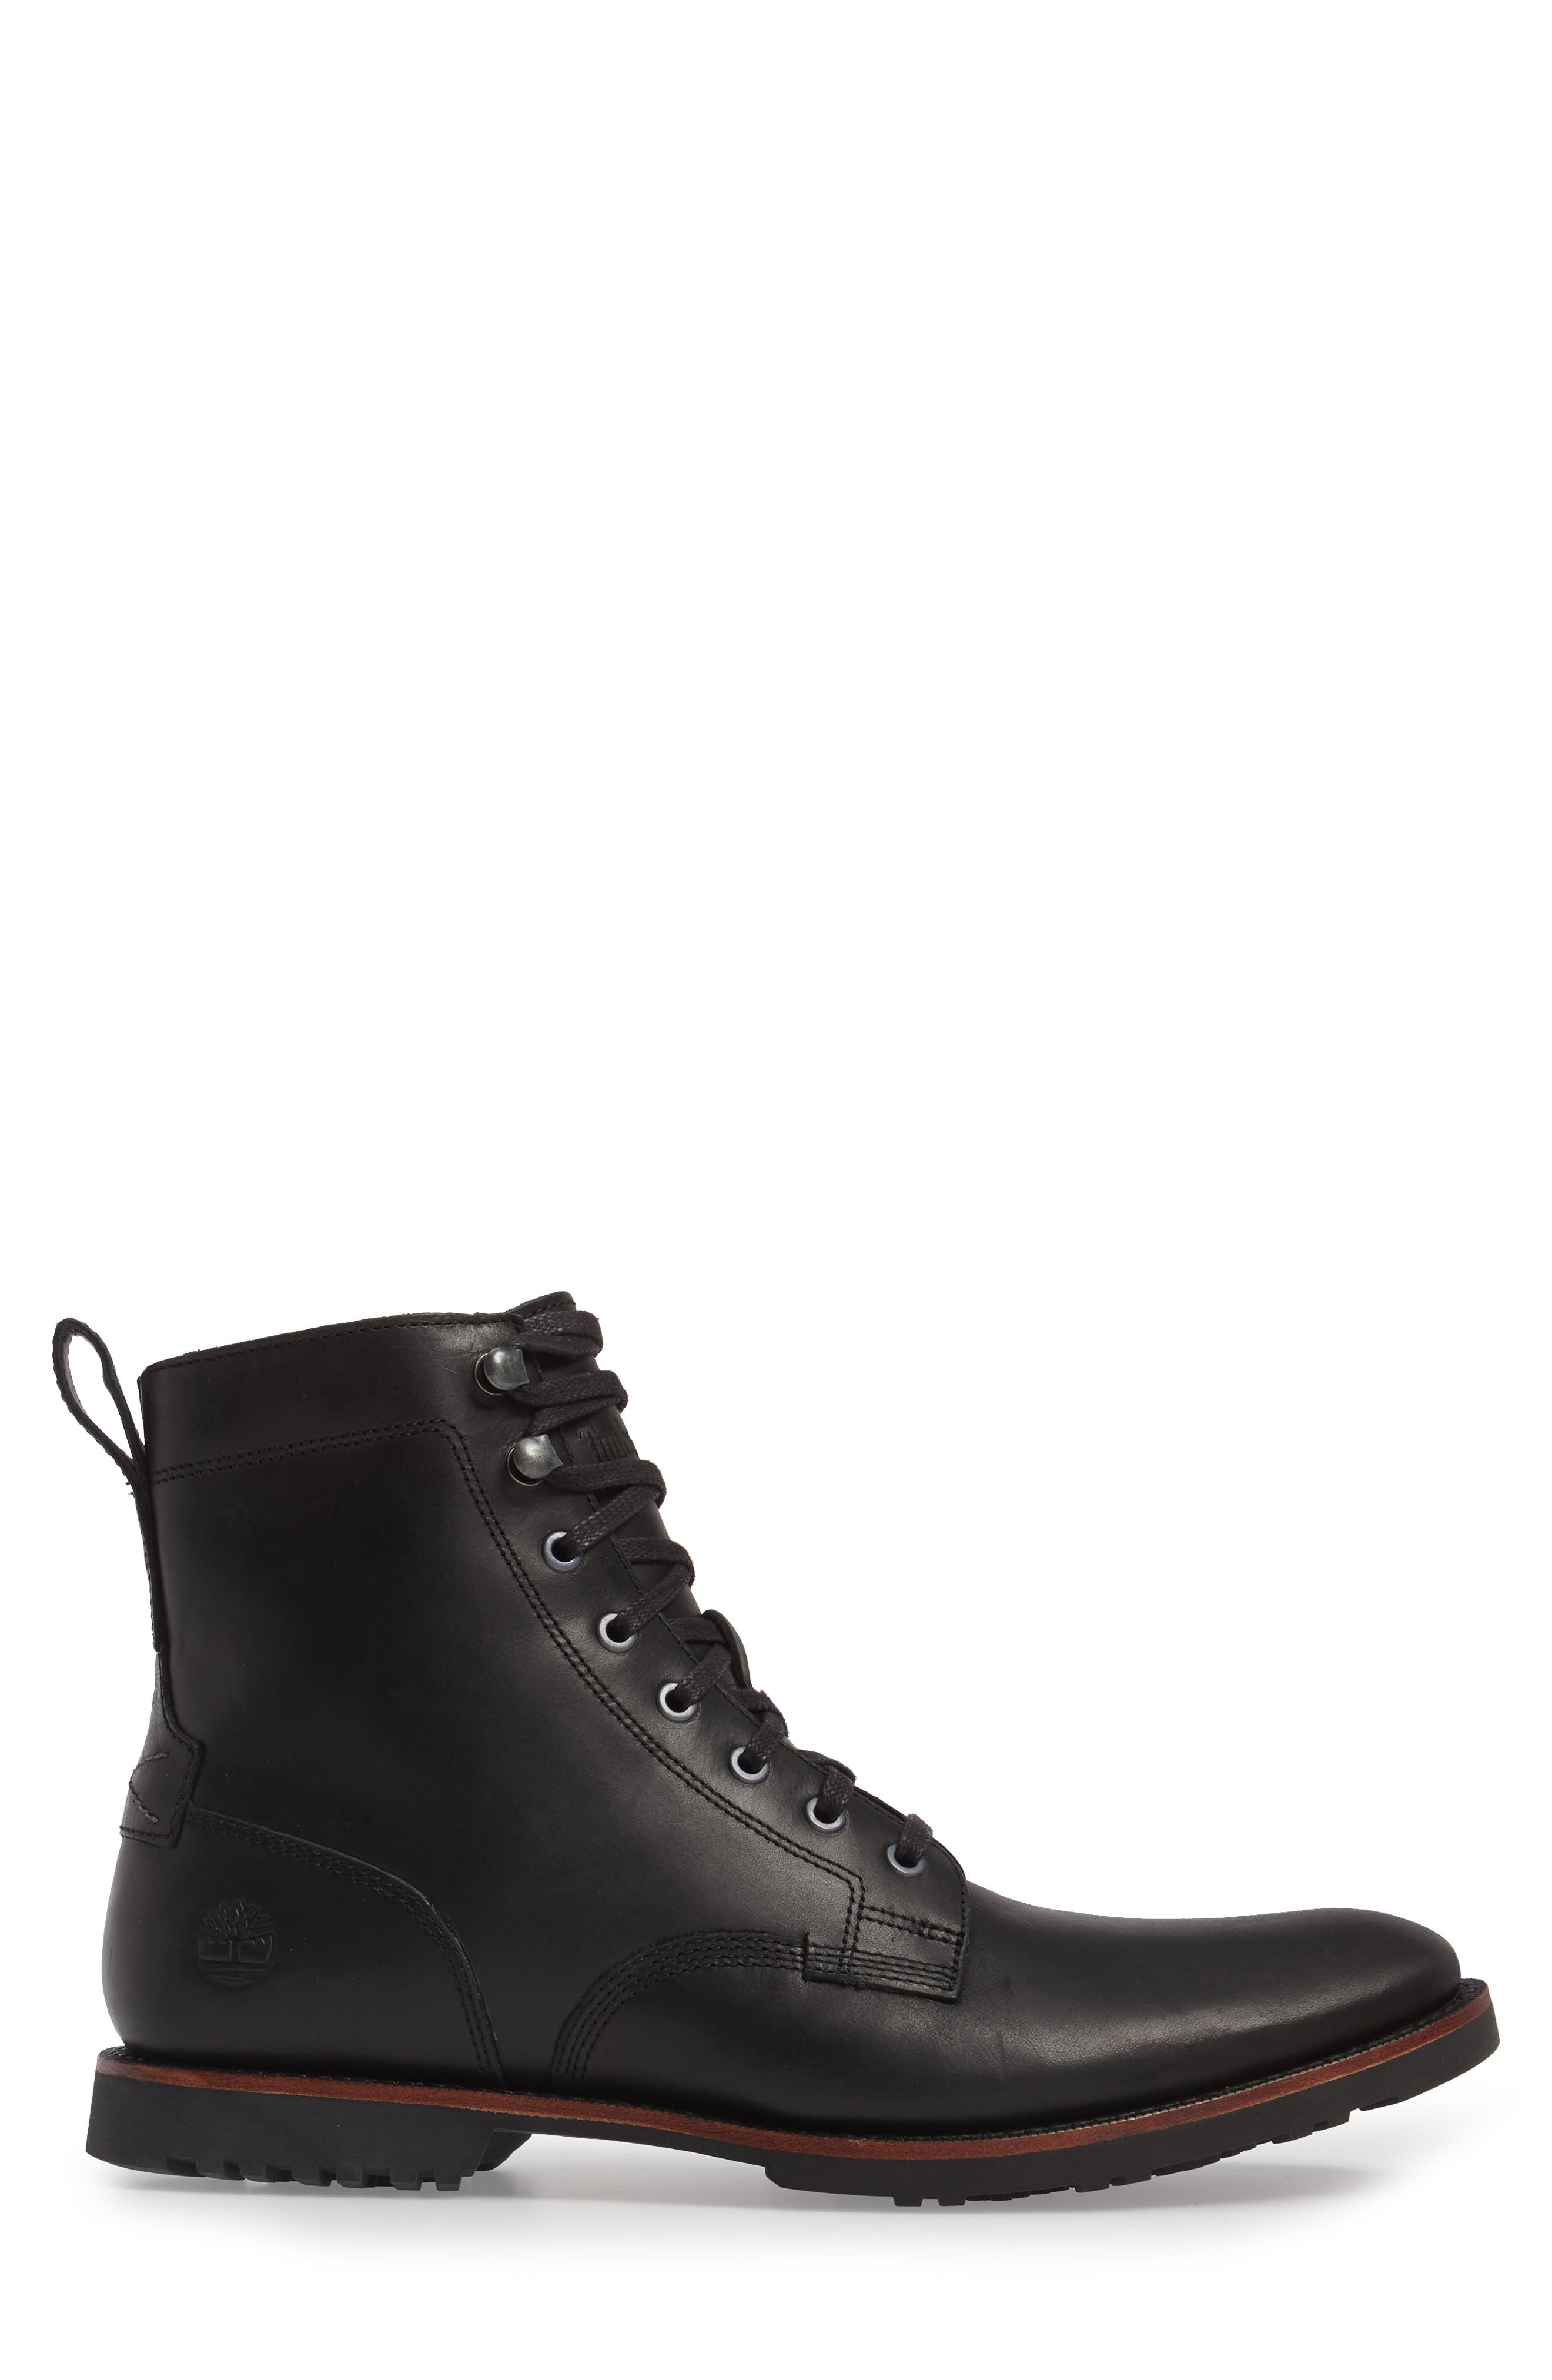 Alternate Image 3  - Timberland Kendrick Side Zip Leather Boot (Men)